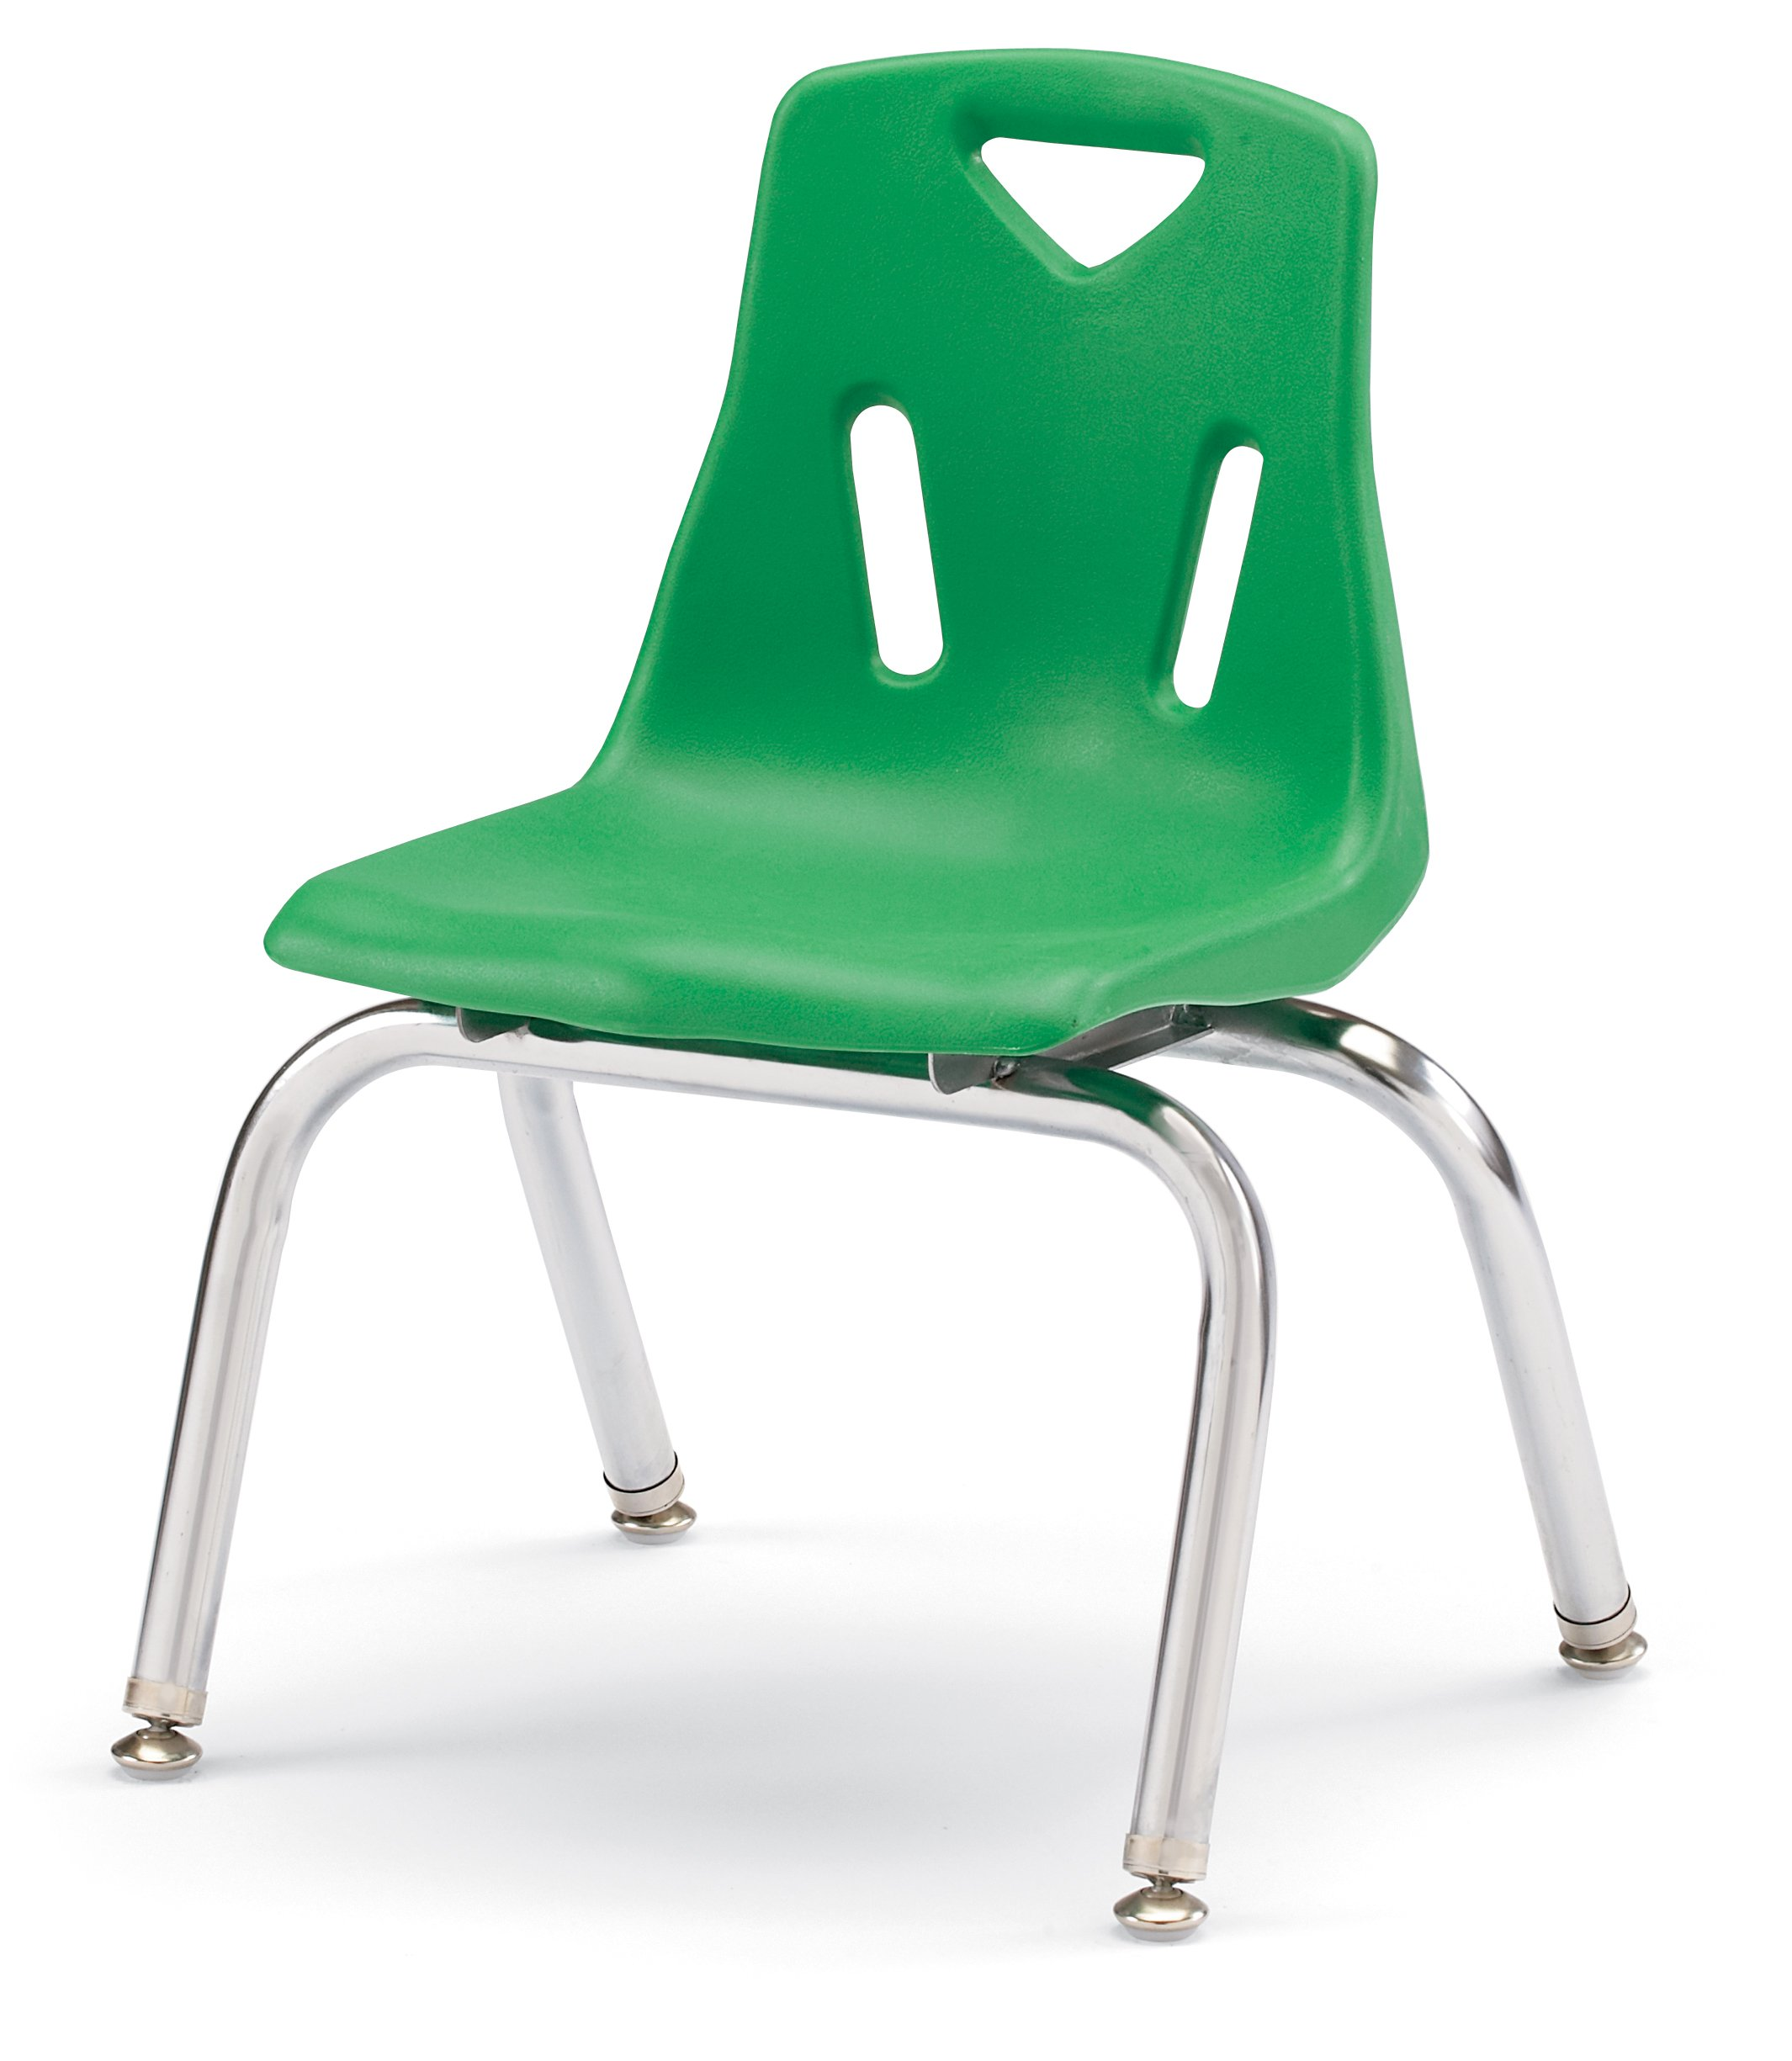 Berries 8142JC1119 Stacking Chair with Chrome-Plated Legs, 12'' Height, Green